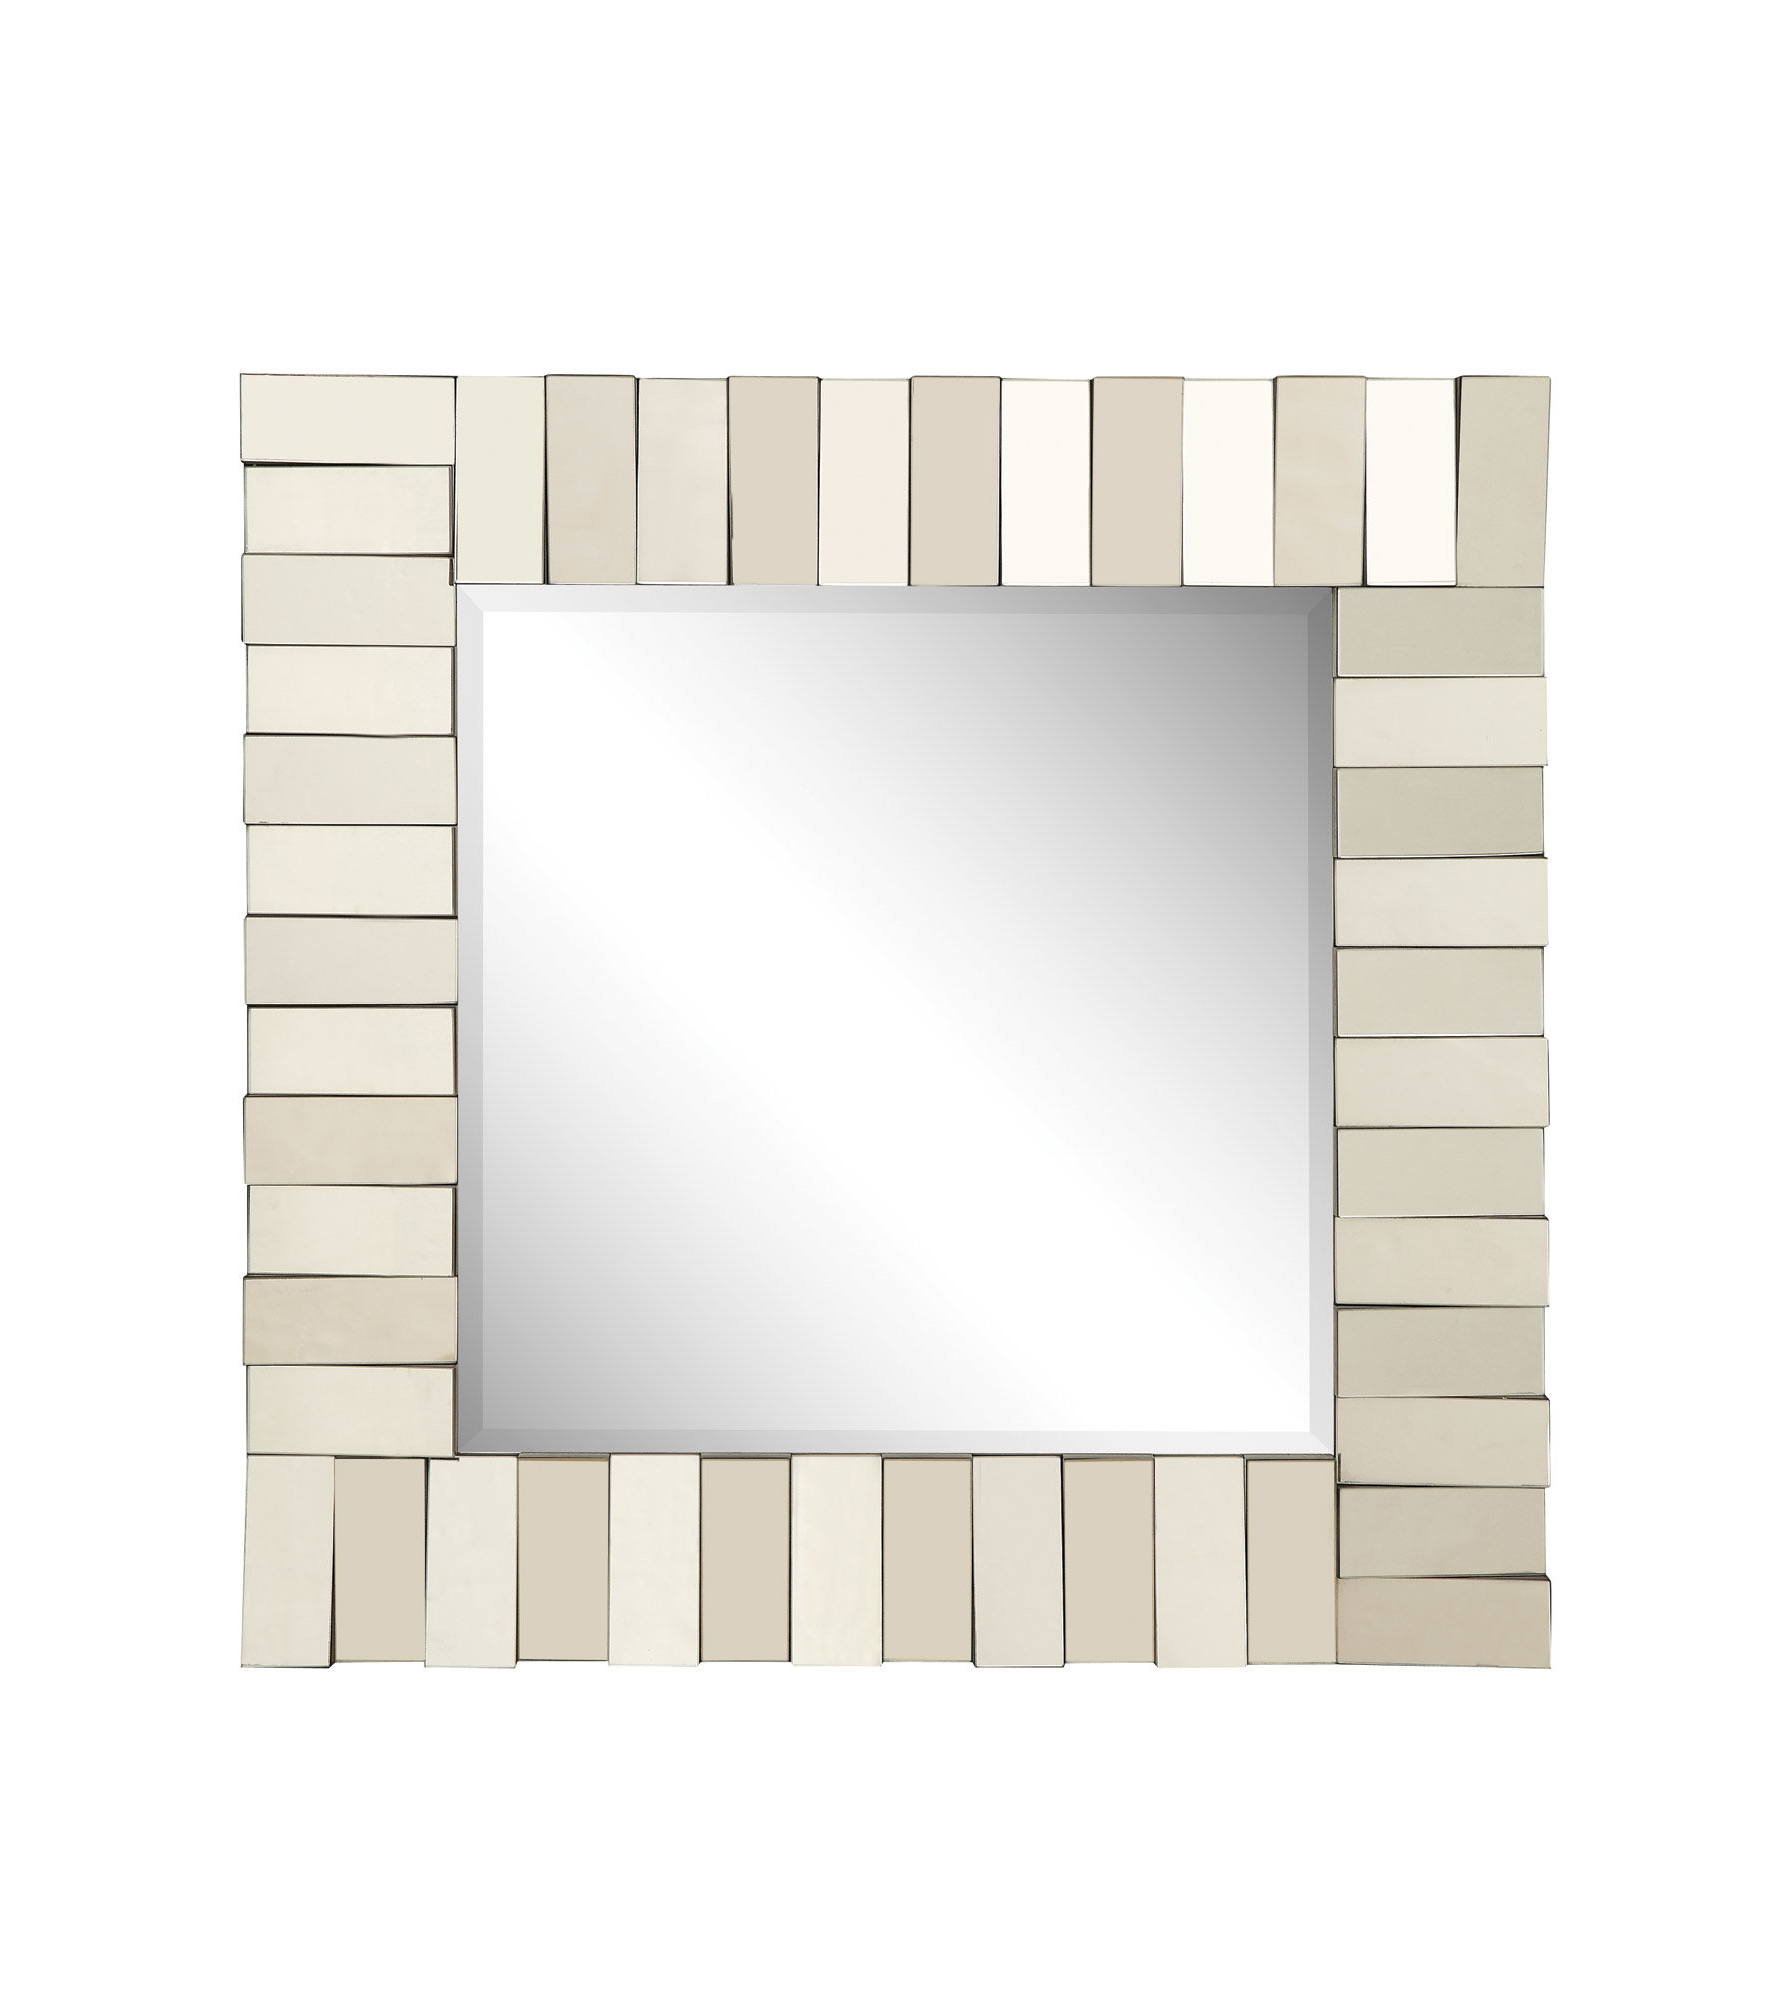 Most Recently Released Modern & Contemporary Beveled Wall Mirror Intended For Modern & Contemporary Beveled Wall Mirrors (View 3 of 20)